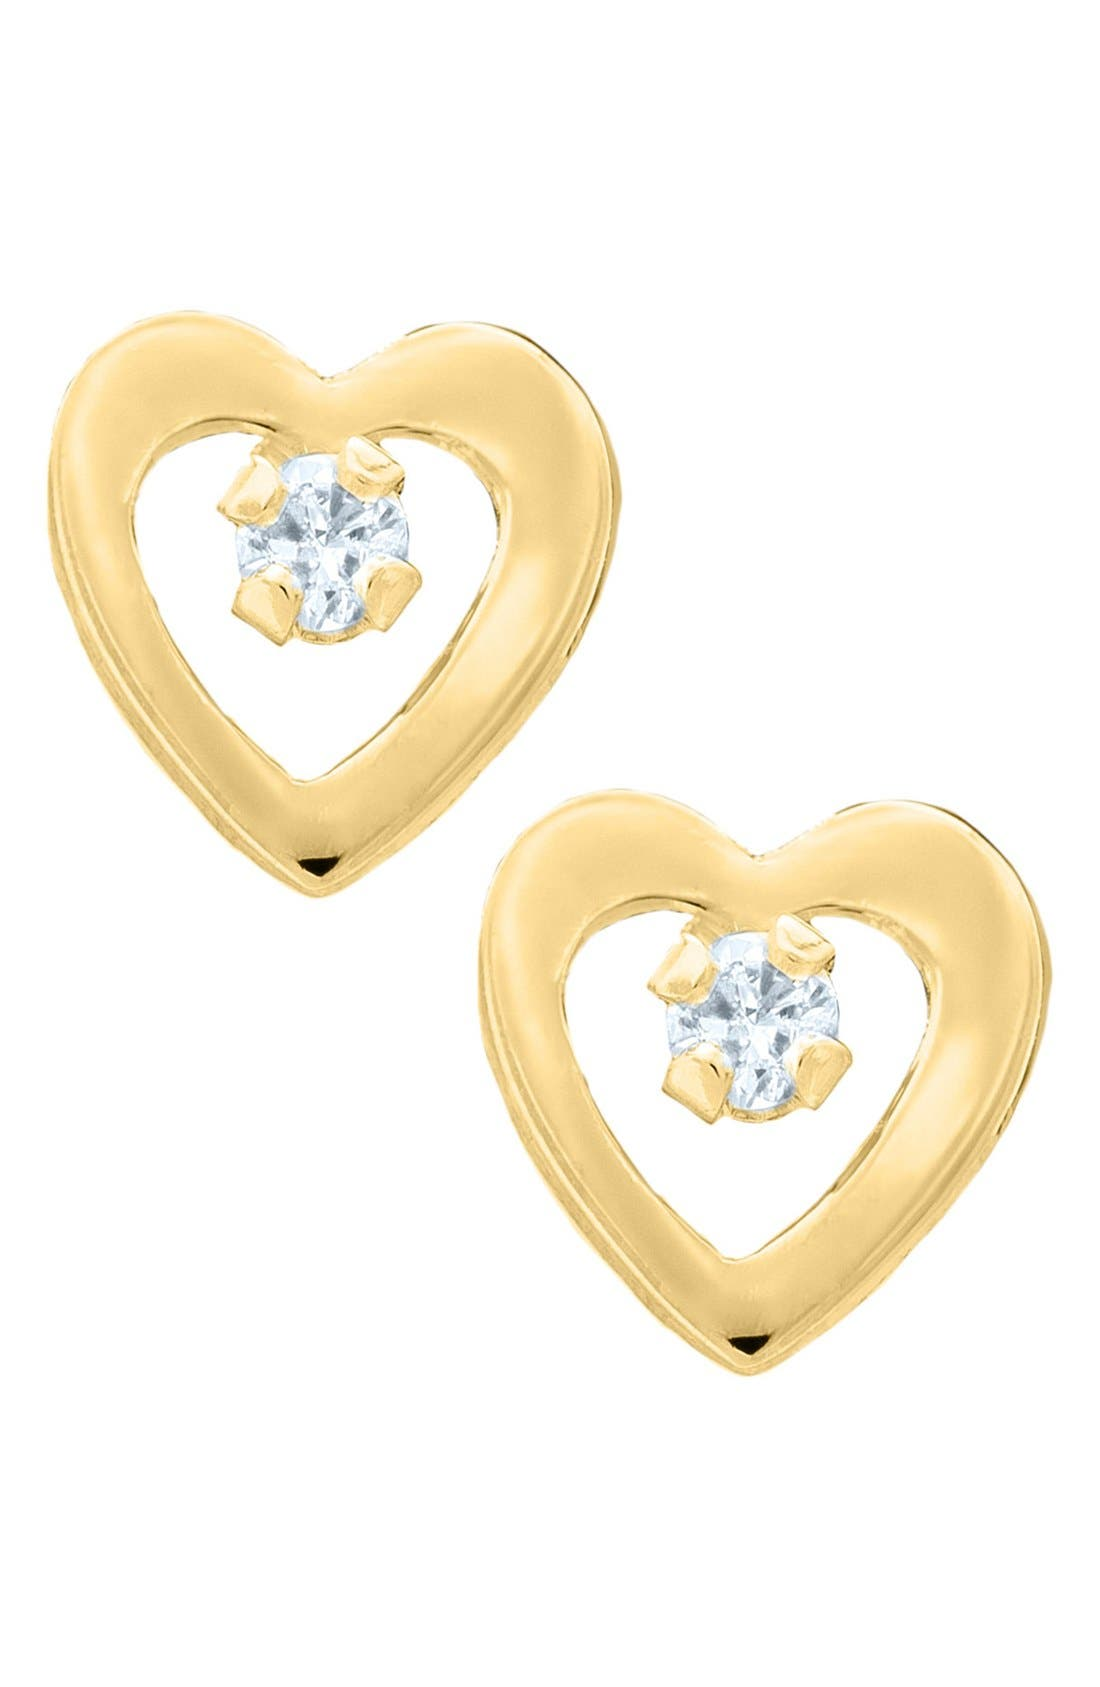 Main Image - Mignonette 14k Yellow Gold & Diamond Open Heart Earrings (Baby Girls)